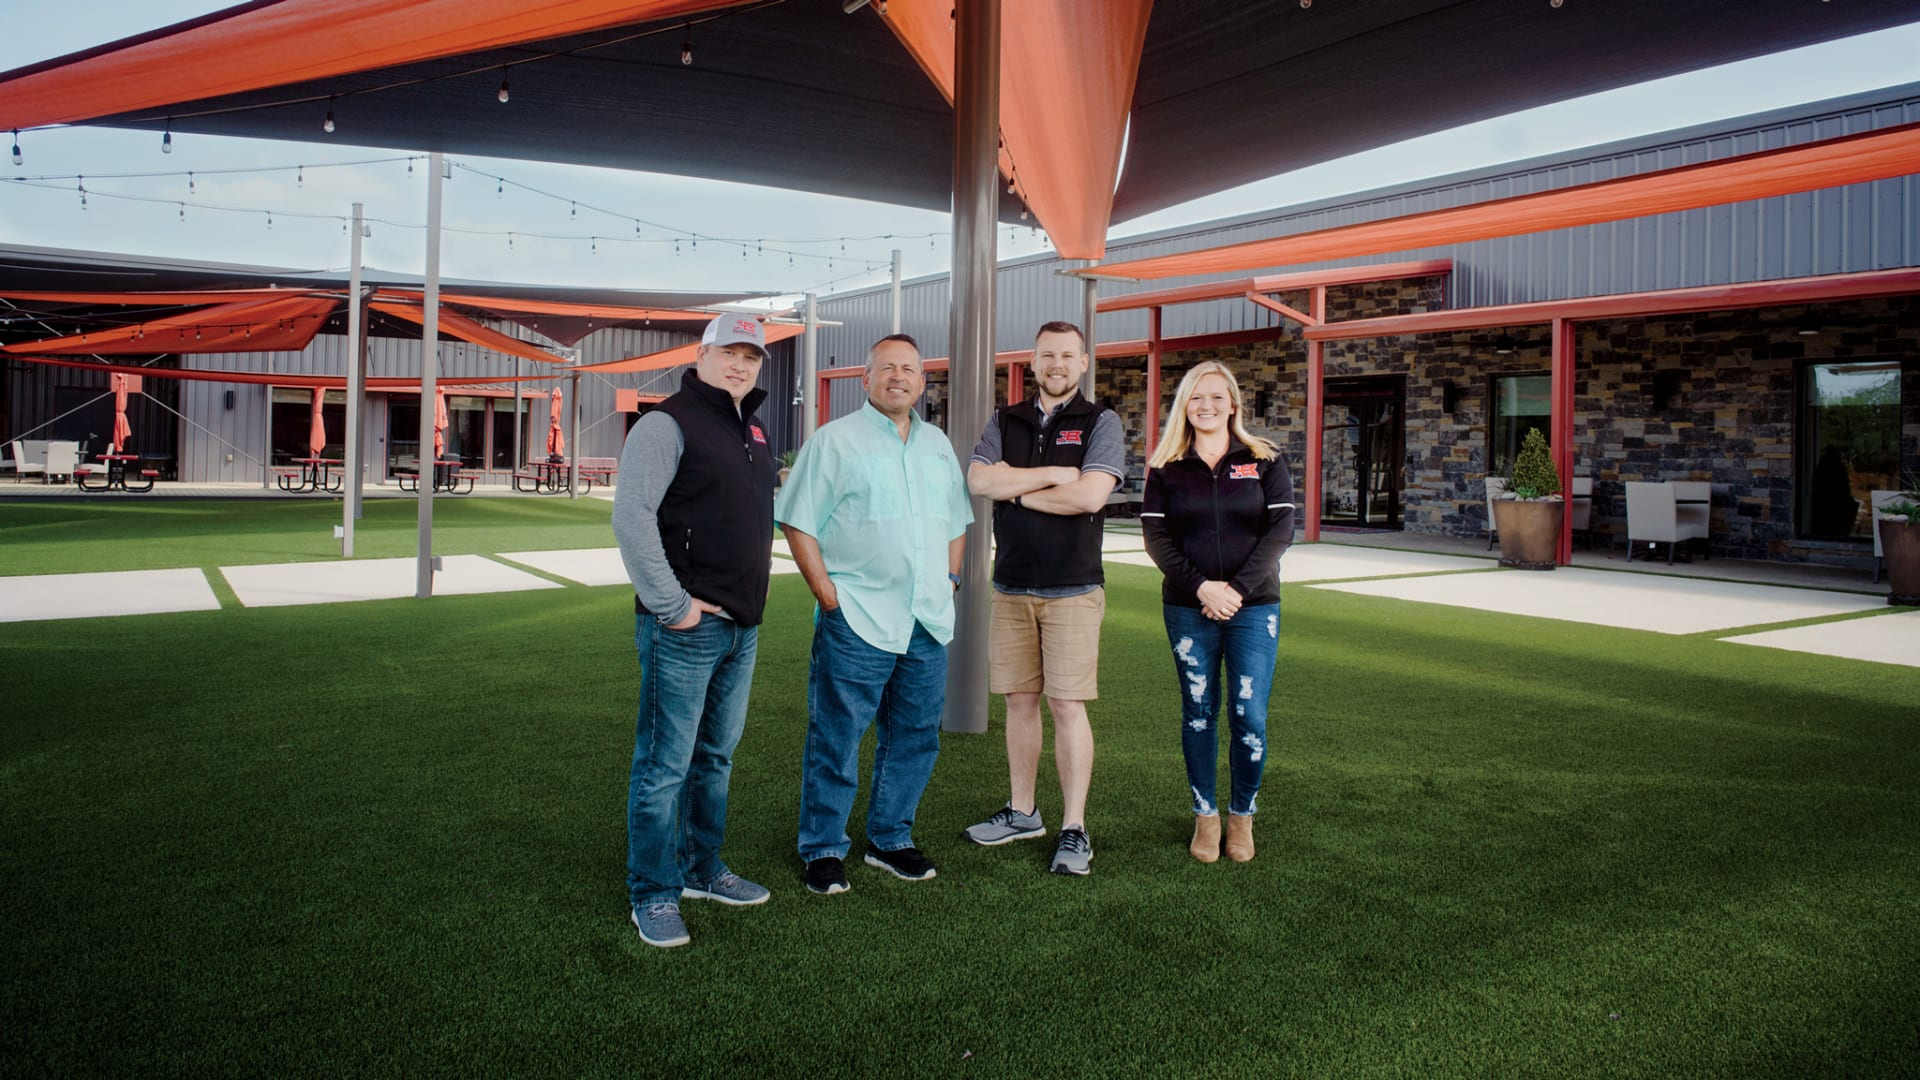 Members of the Bohannan family at the company's new HQ, which has a music venue, twin fire pits, and, soon,  a swimming pond.